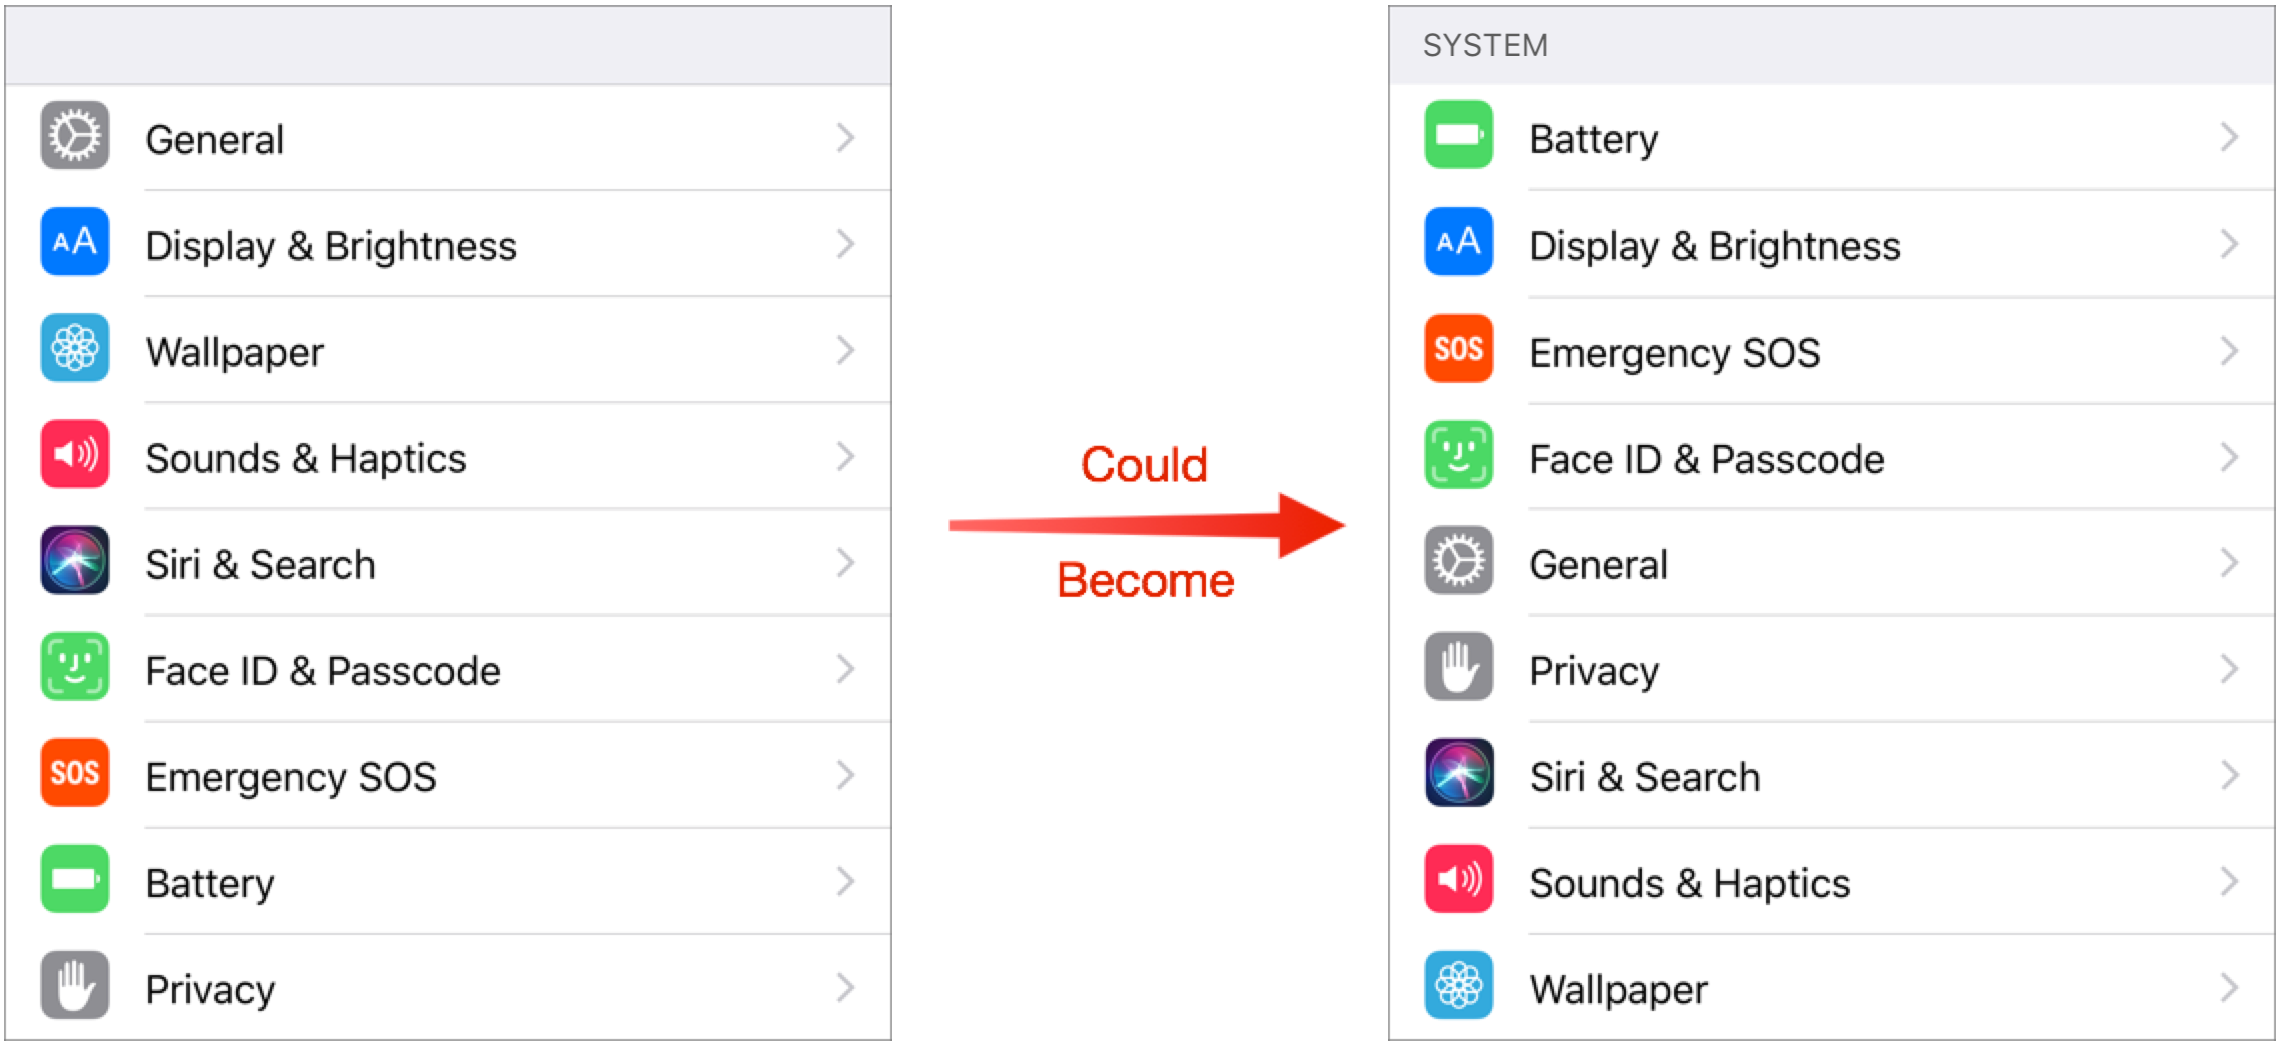 Bad Apple #2: Alphabetize Settings in iOS - TidBITS